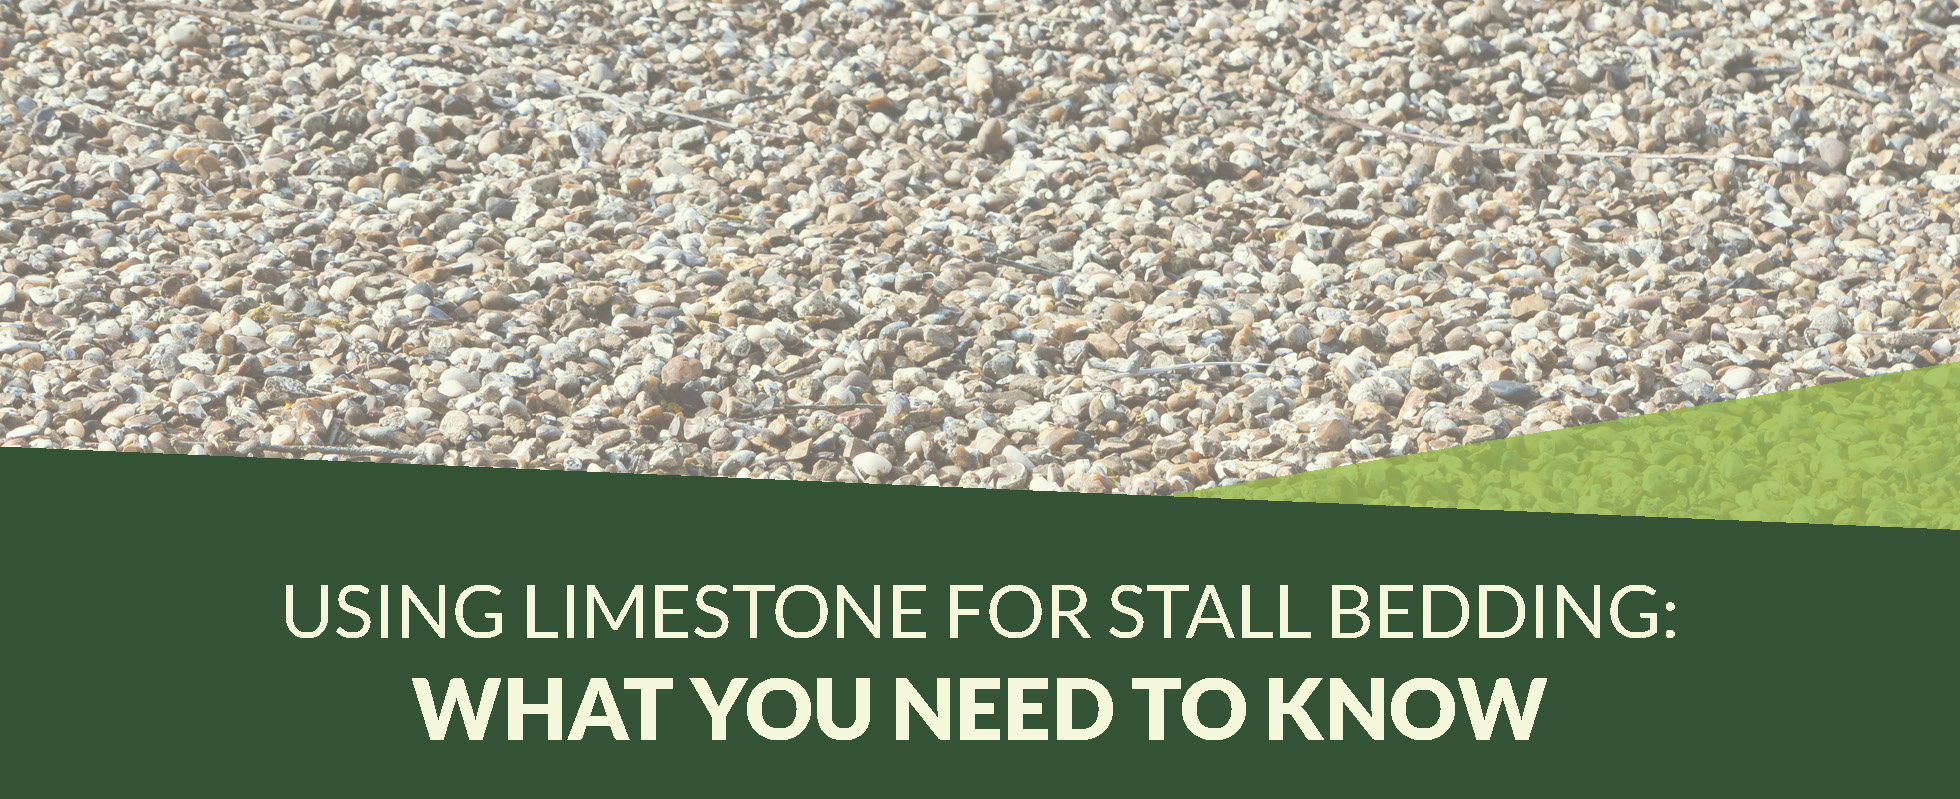 Use Limestone For Stall Bedding Lime